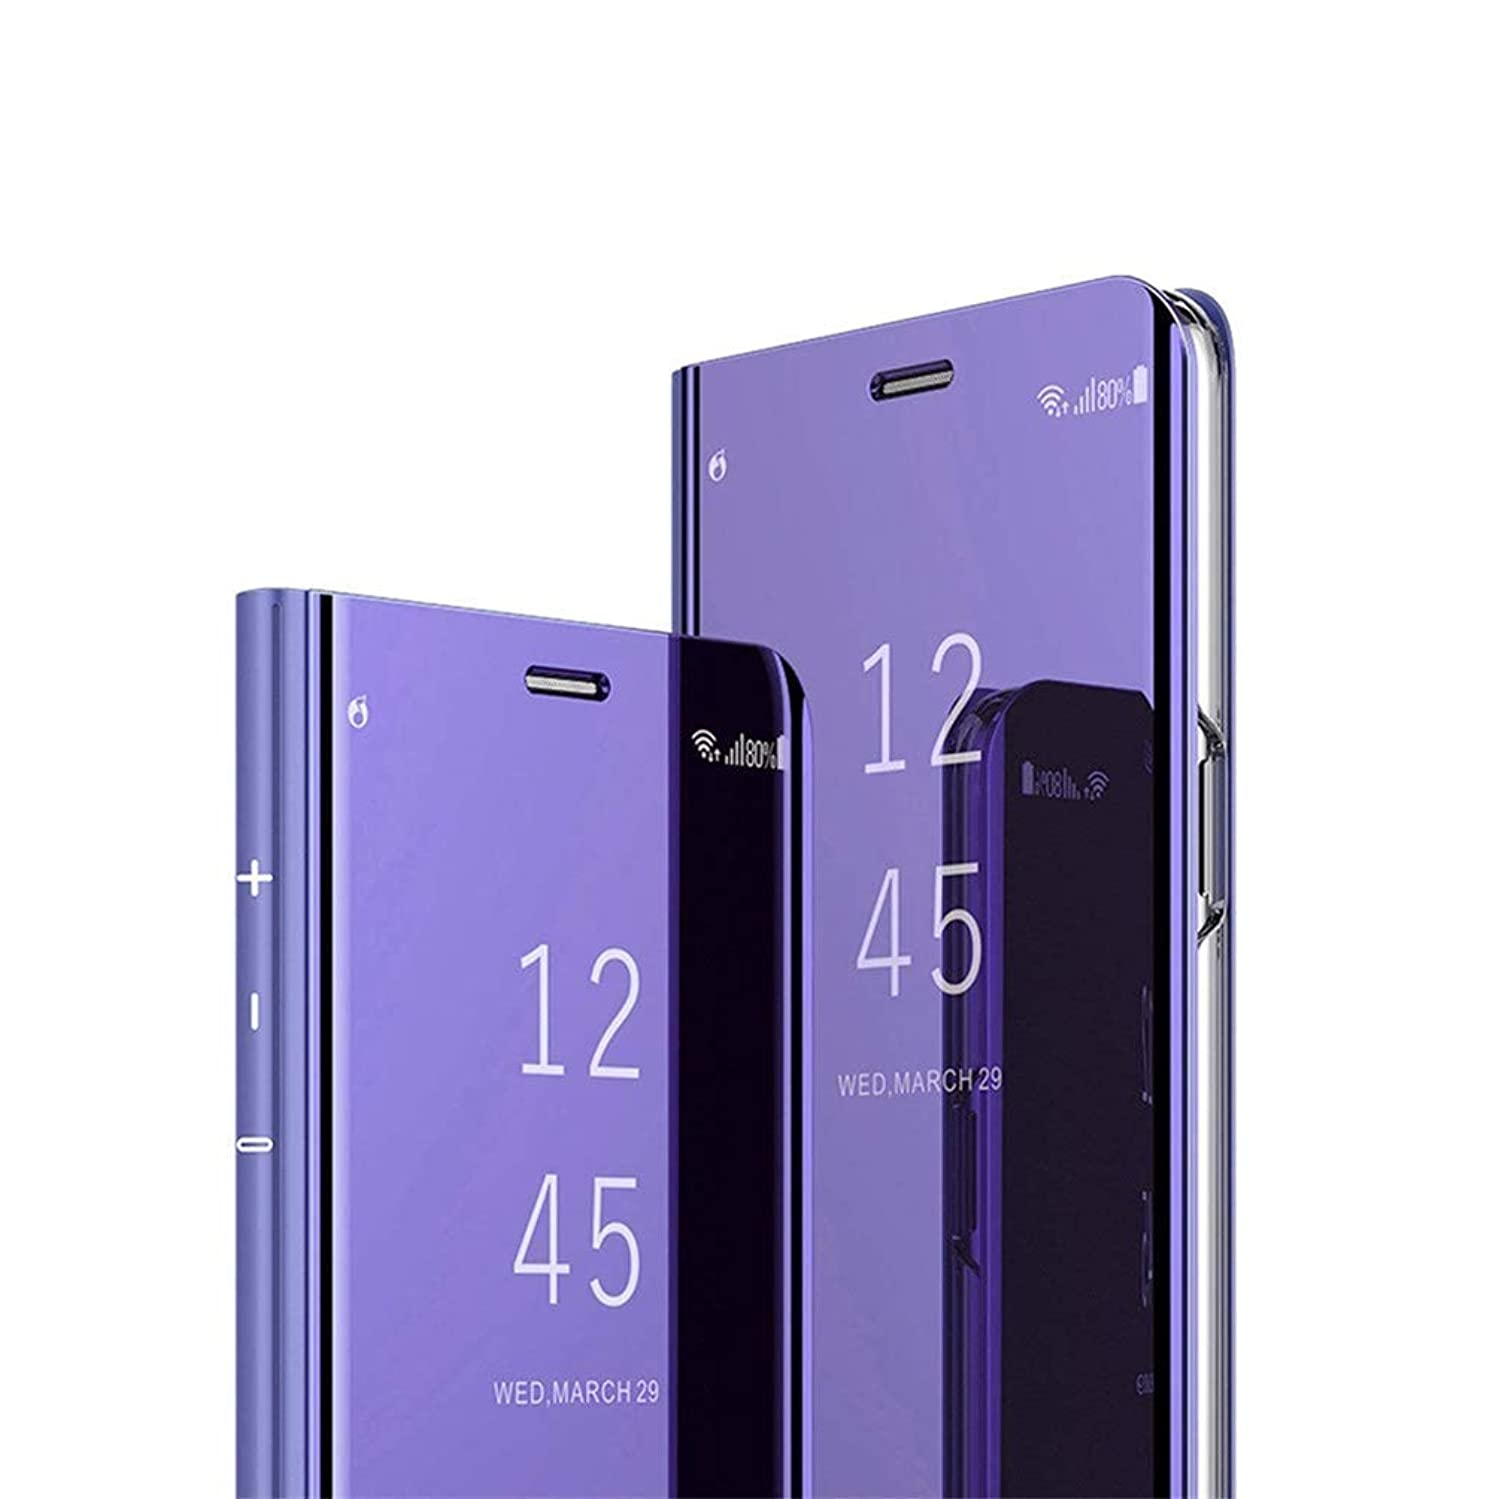 HMTECHUS Galaxy A7 2018 case Luxury Design Clear View Bookstyle Electroplate Plating Scratchproof Full Body Protective Flip Folio Slim Cover Samsung Galaxy A7 2018 A750 PU Mirror:Purple MX